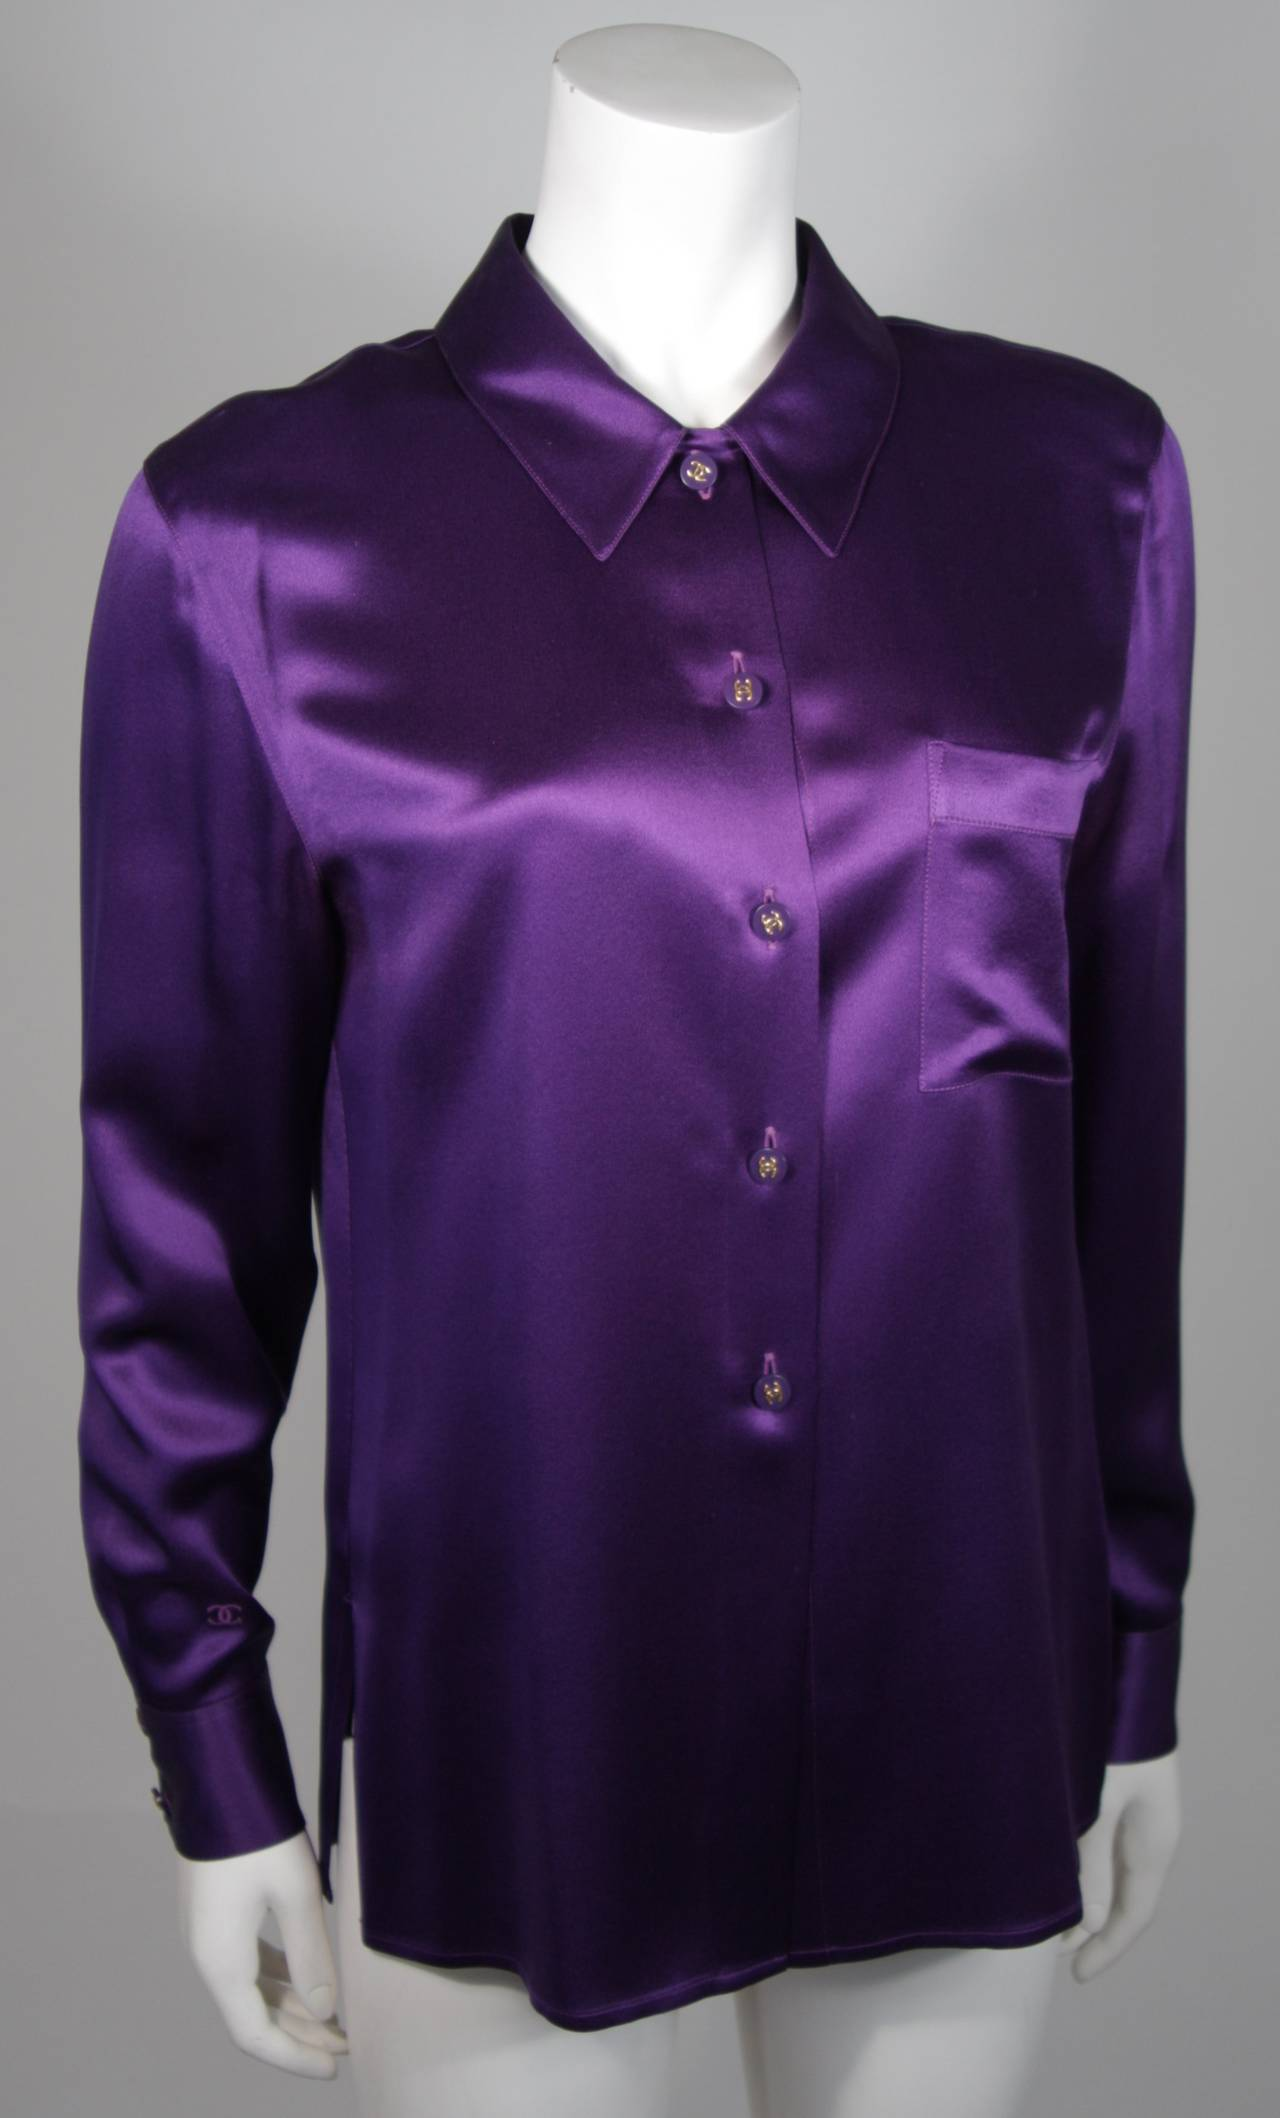 Purple Blouses For Women At Walmart Sale Women S 3 4 Sleeve Tops Shirts Blouses Bealls Florida Discover The Latest Best Selling Shop Women S Shirts High Quality Blouses